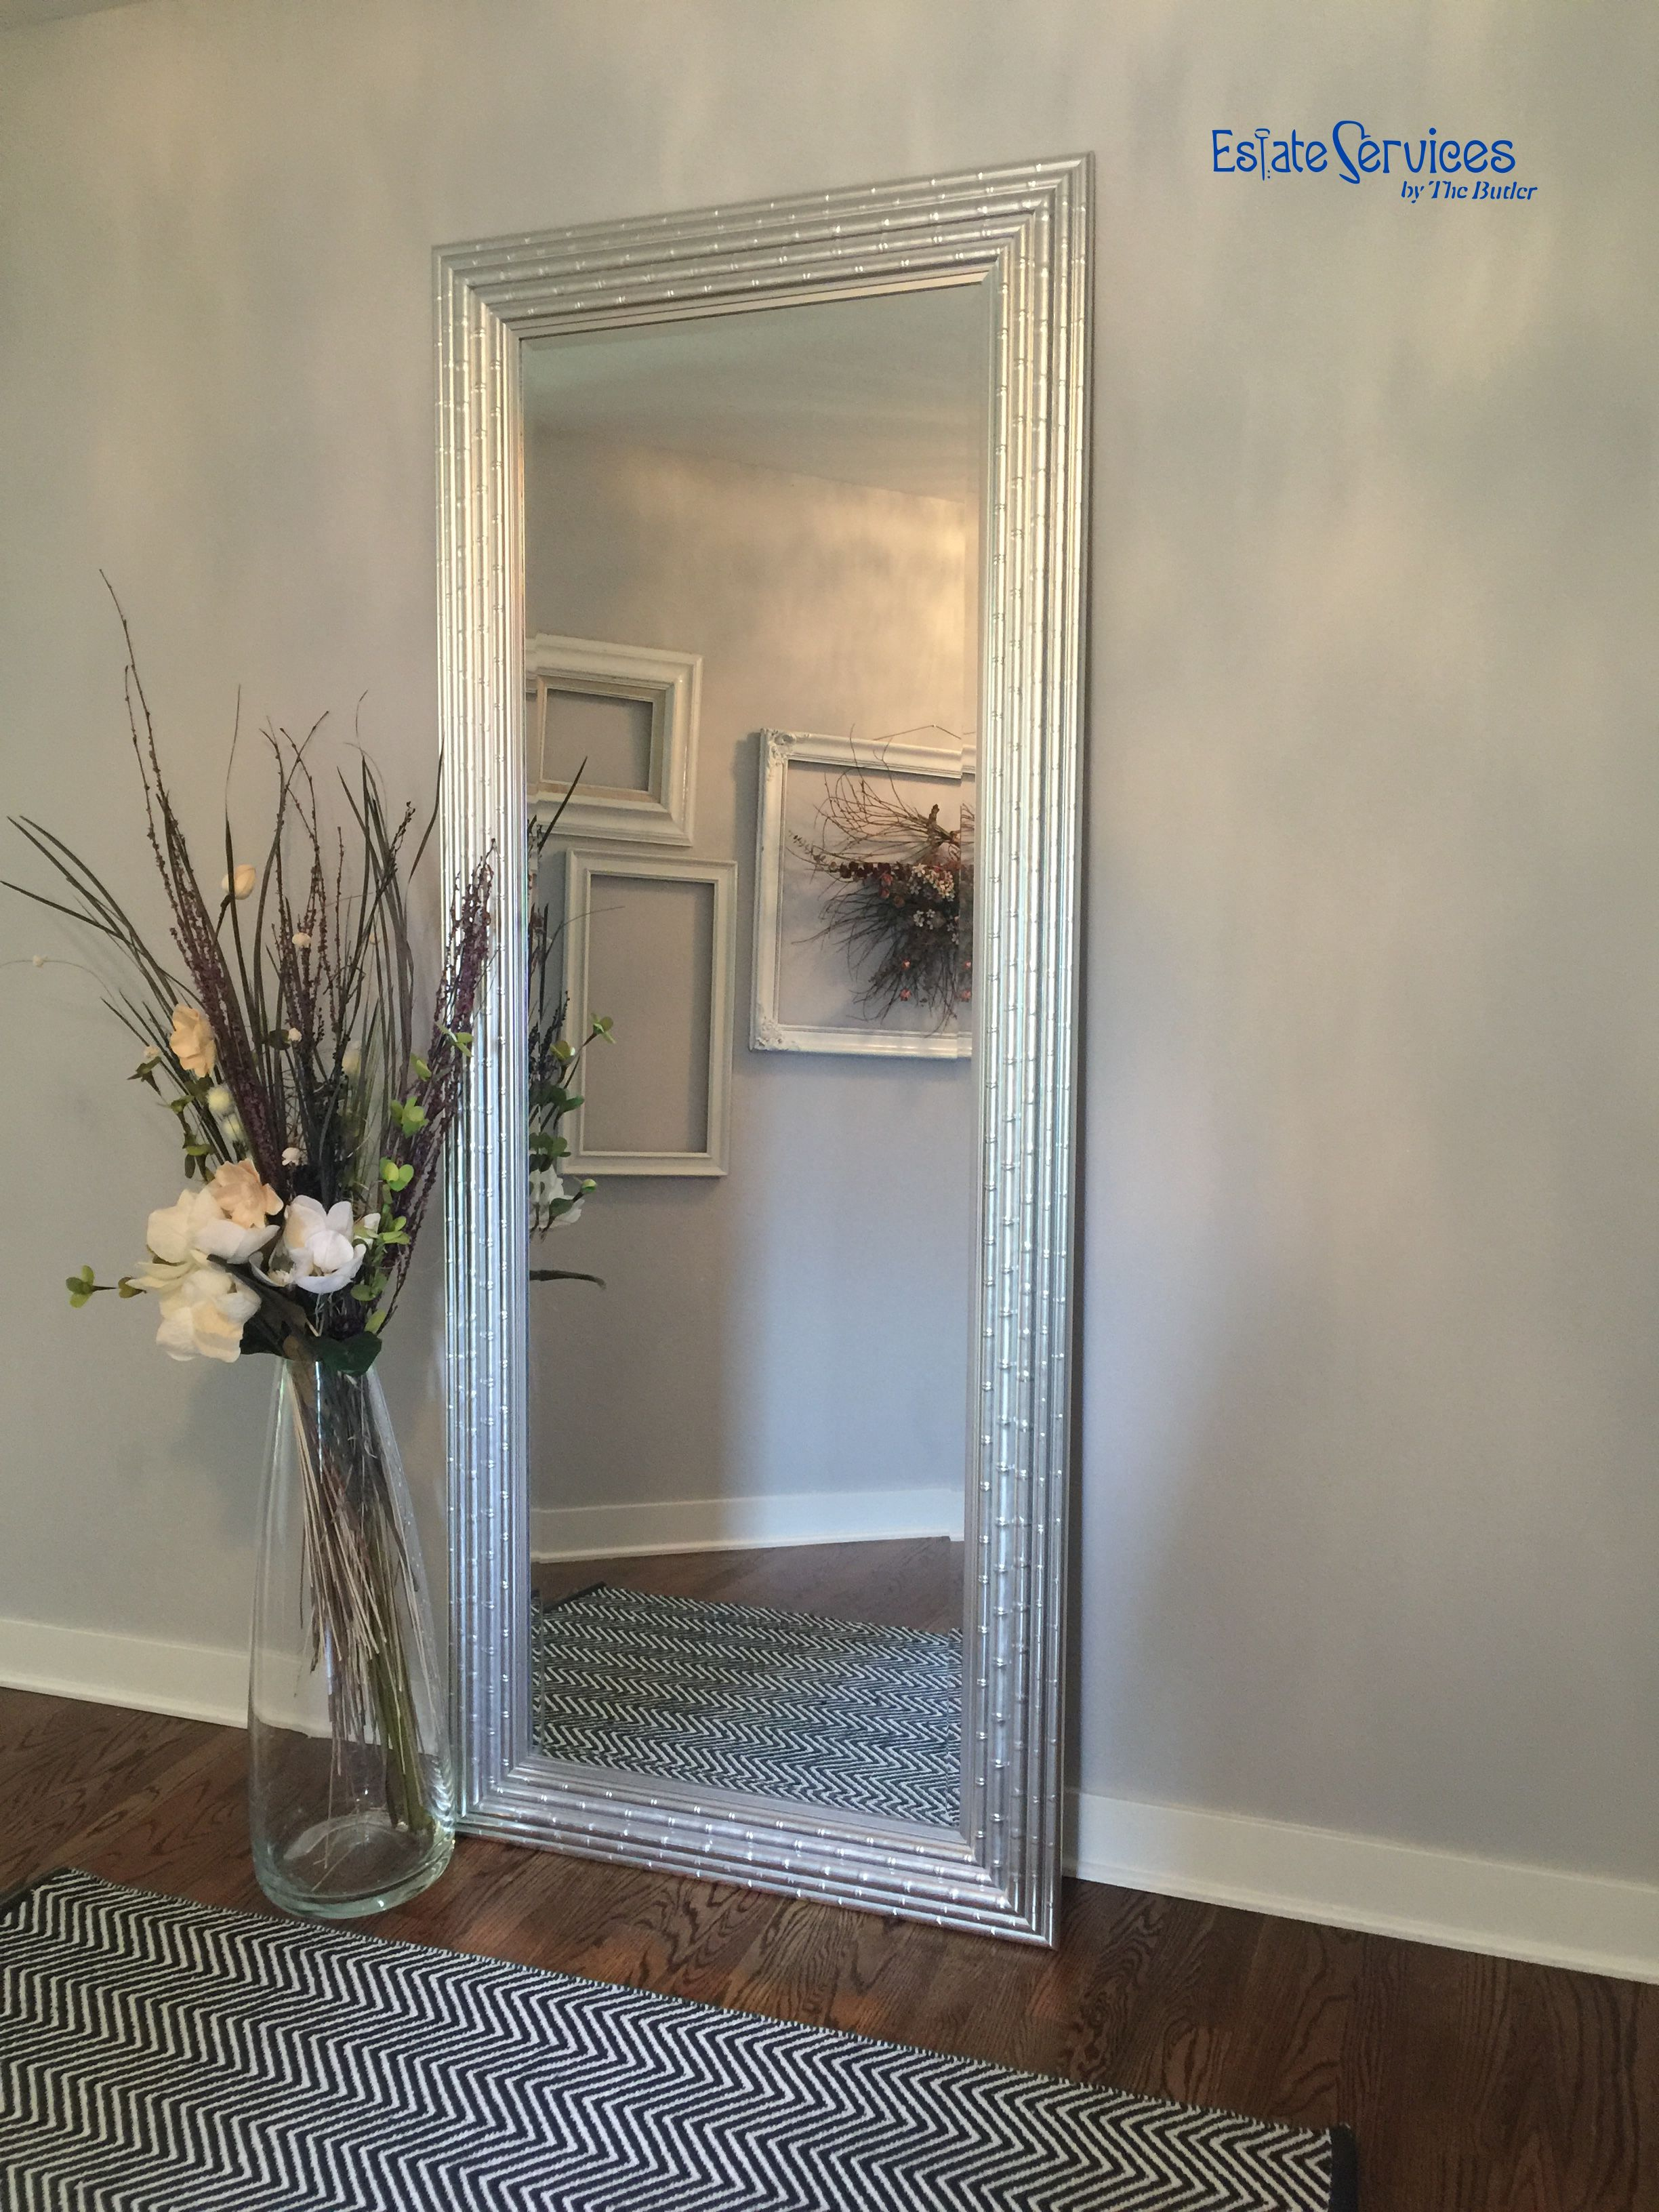 Simple Floor Accessory Tall Mirror For An Illusion For Added